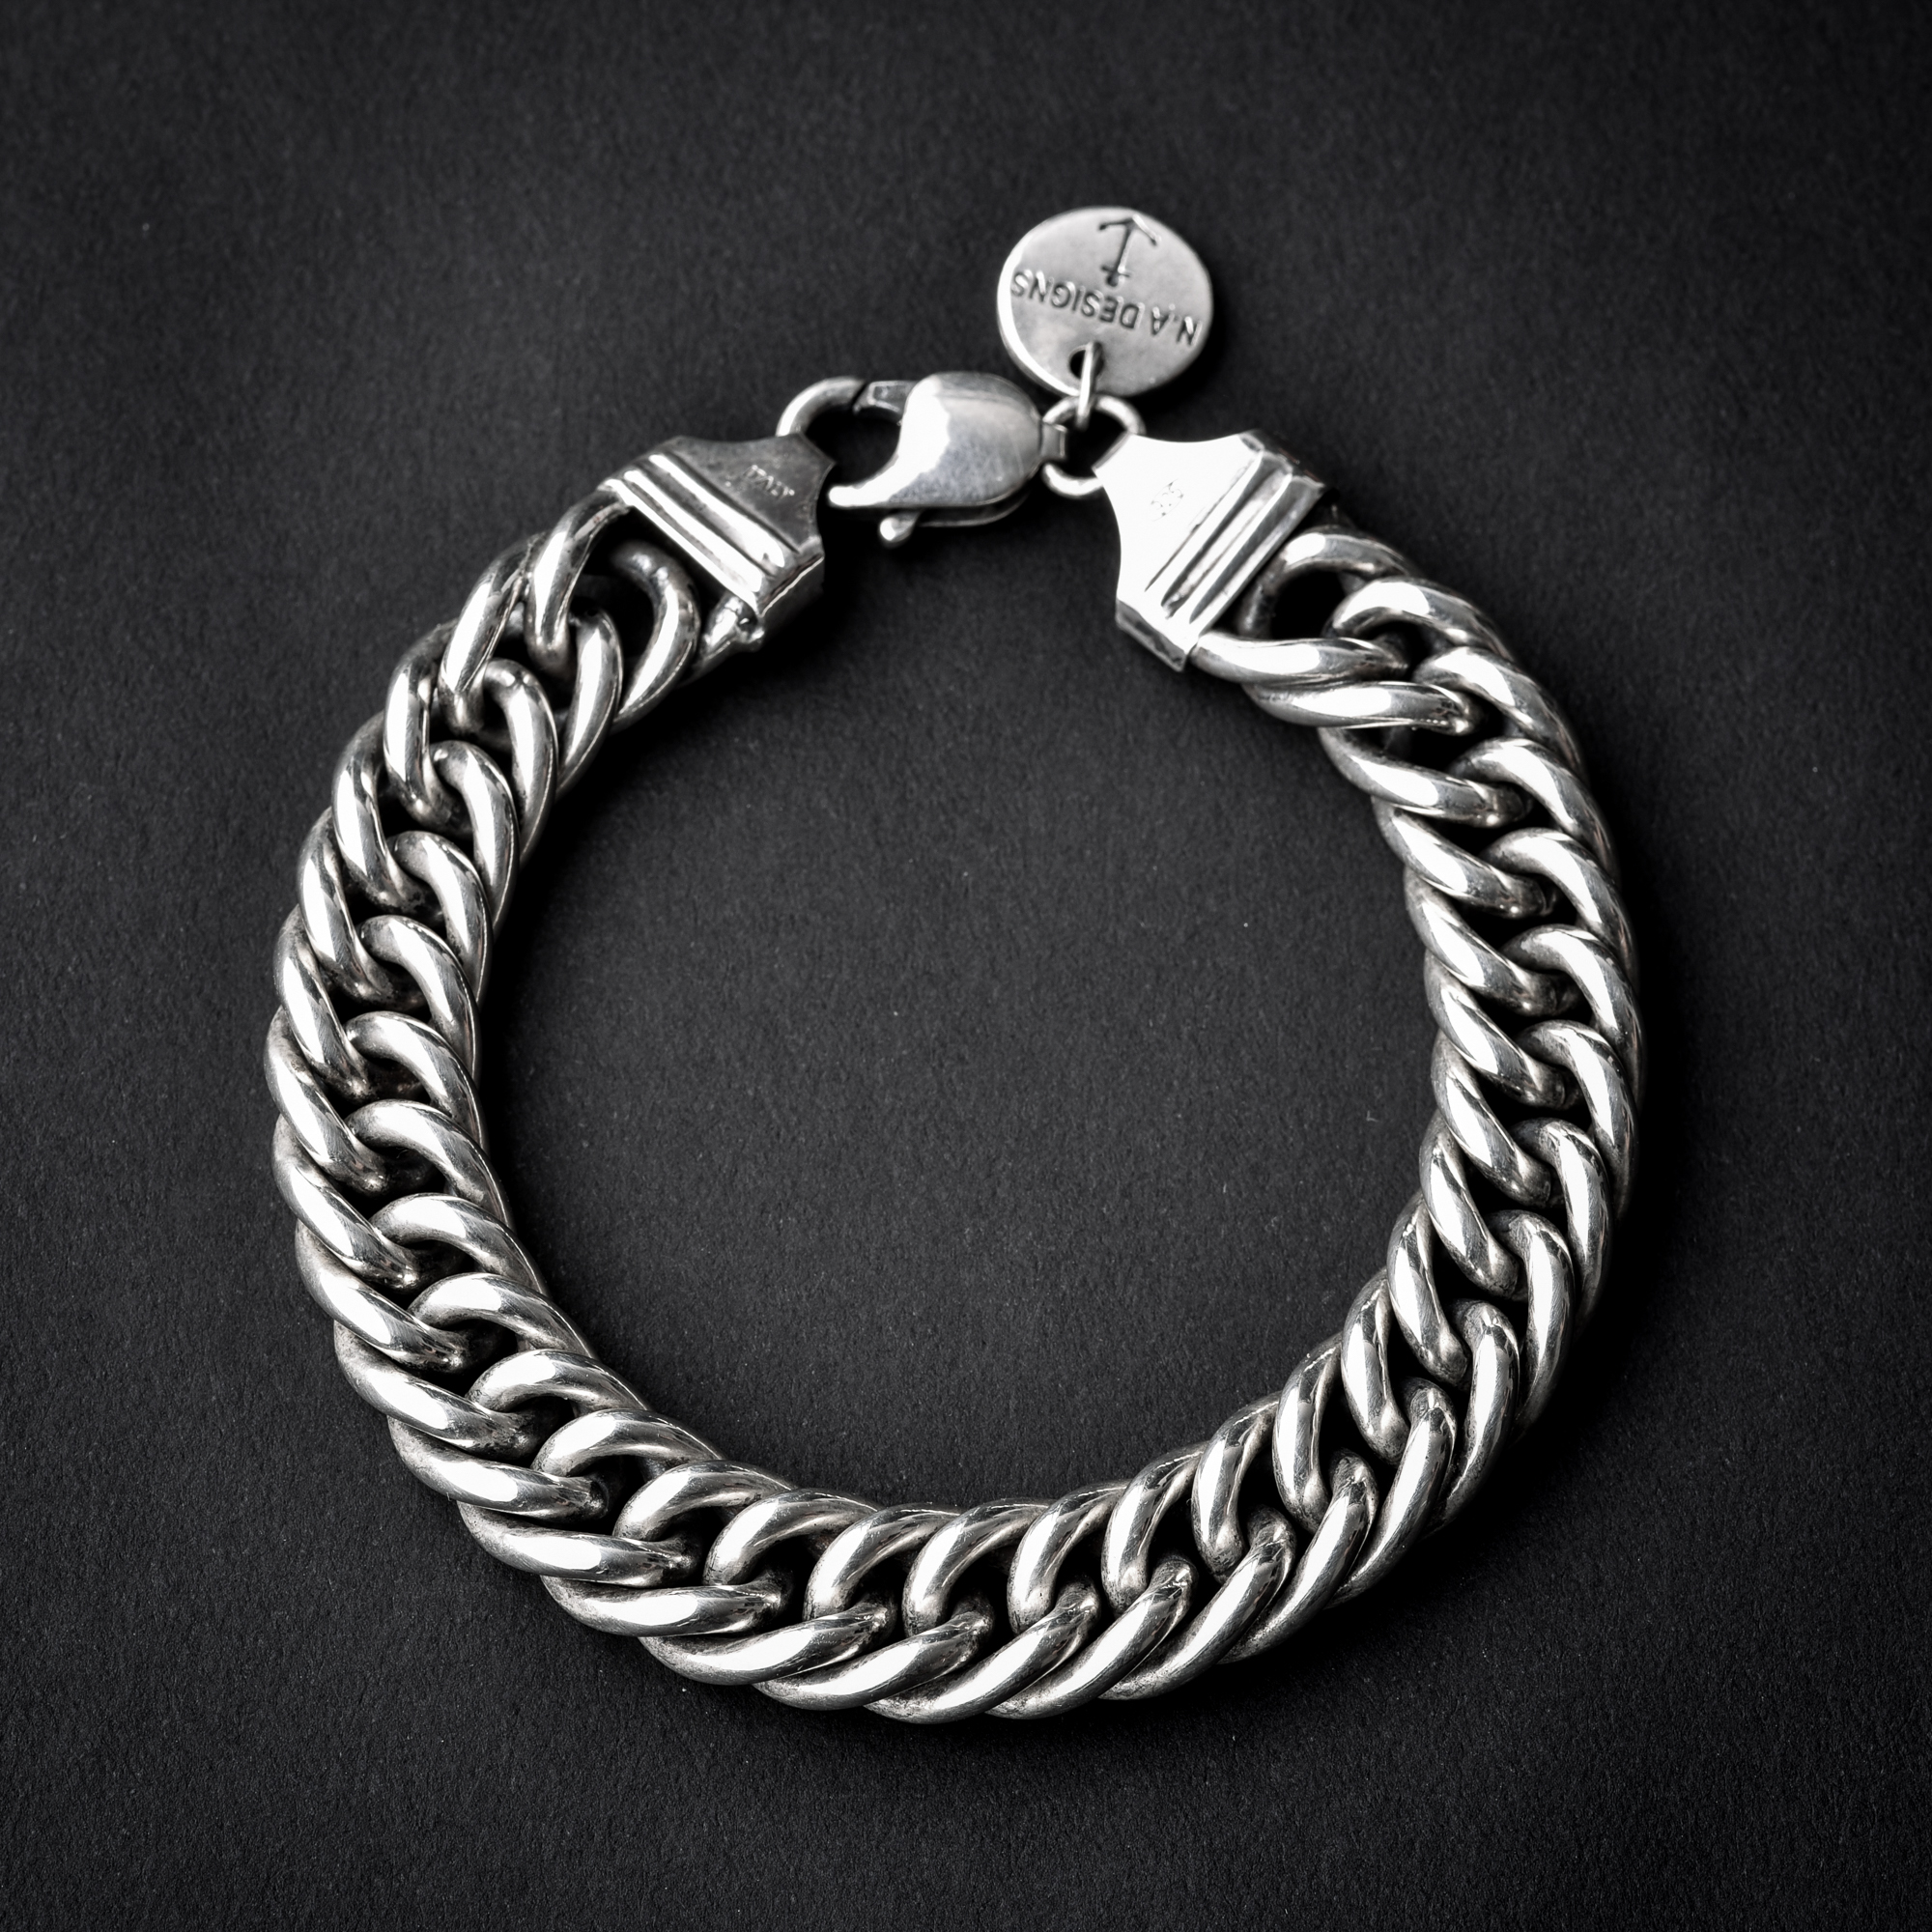 Round Double Chain Link Bracelet N A